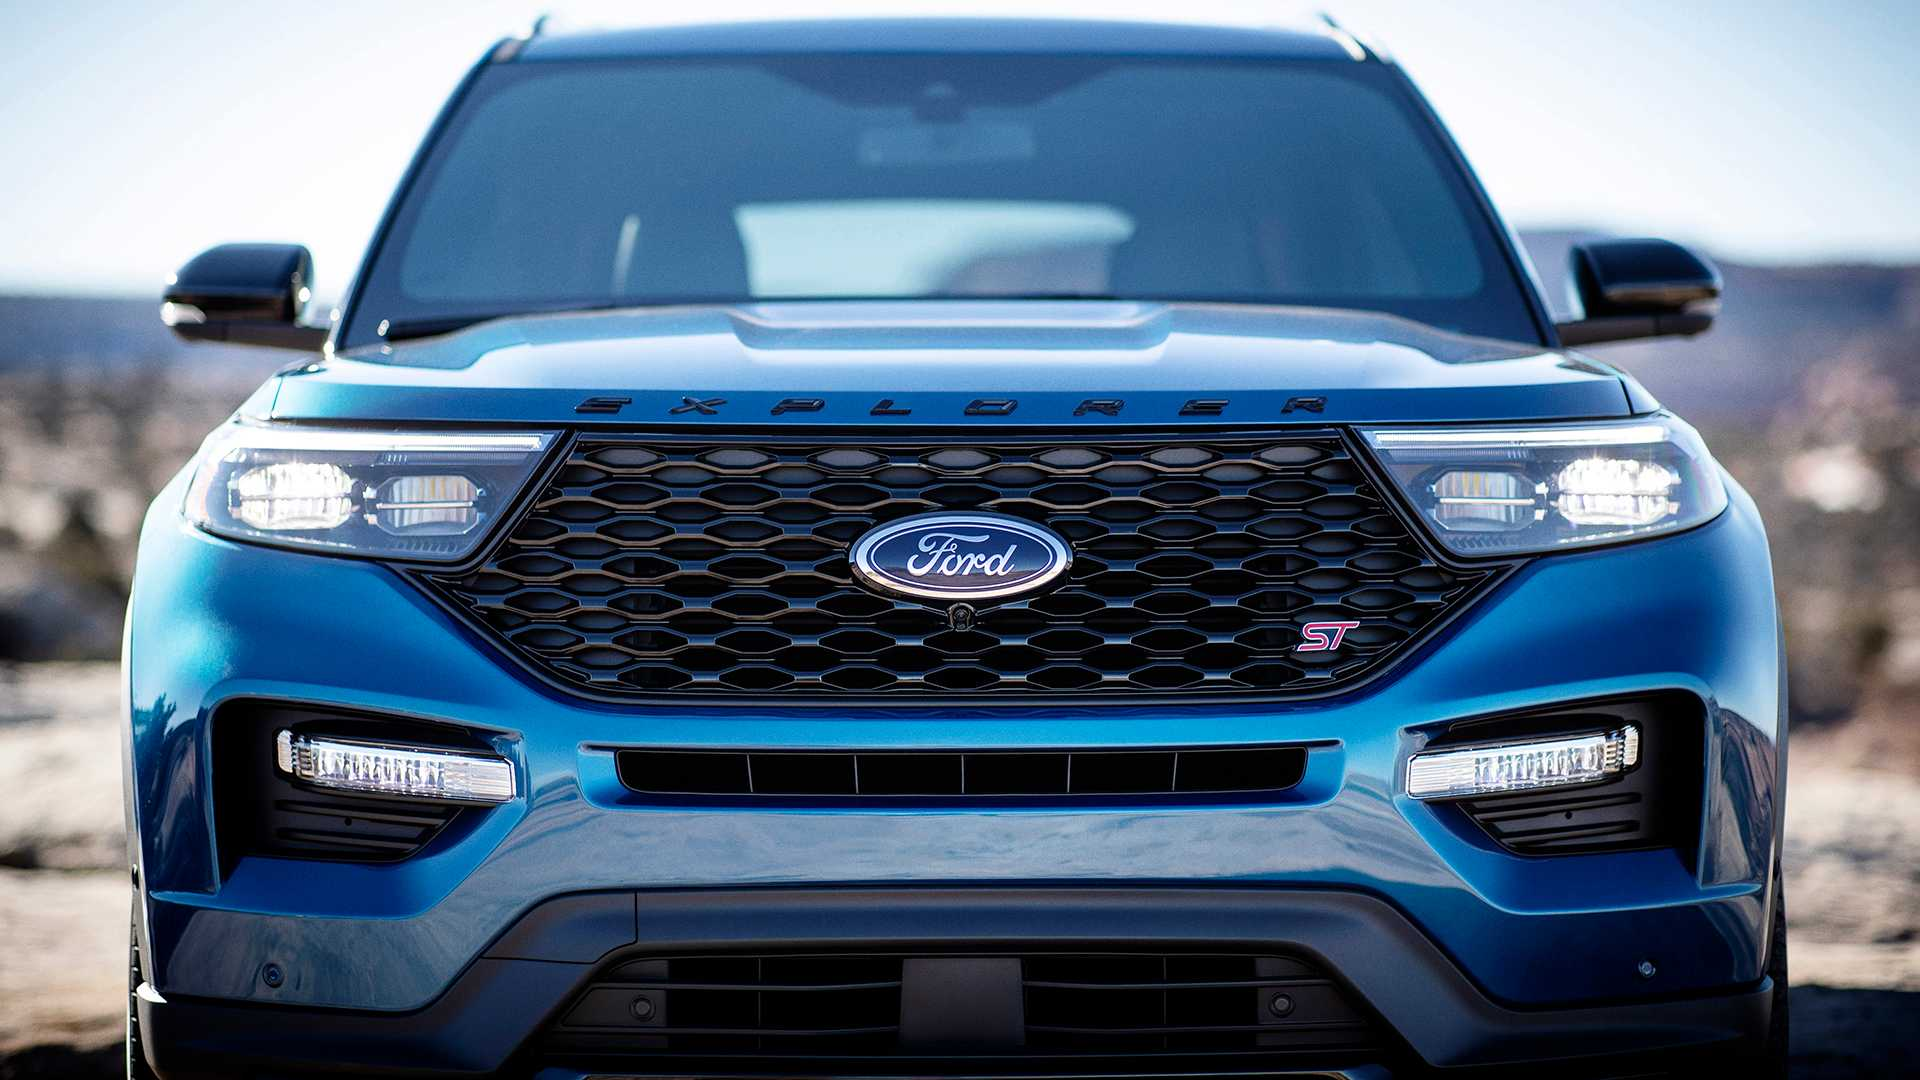 88 All New 2020 Ford Explorer Build And Price Ratings by 2020 Ford Explorer Build And Price